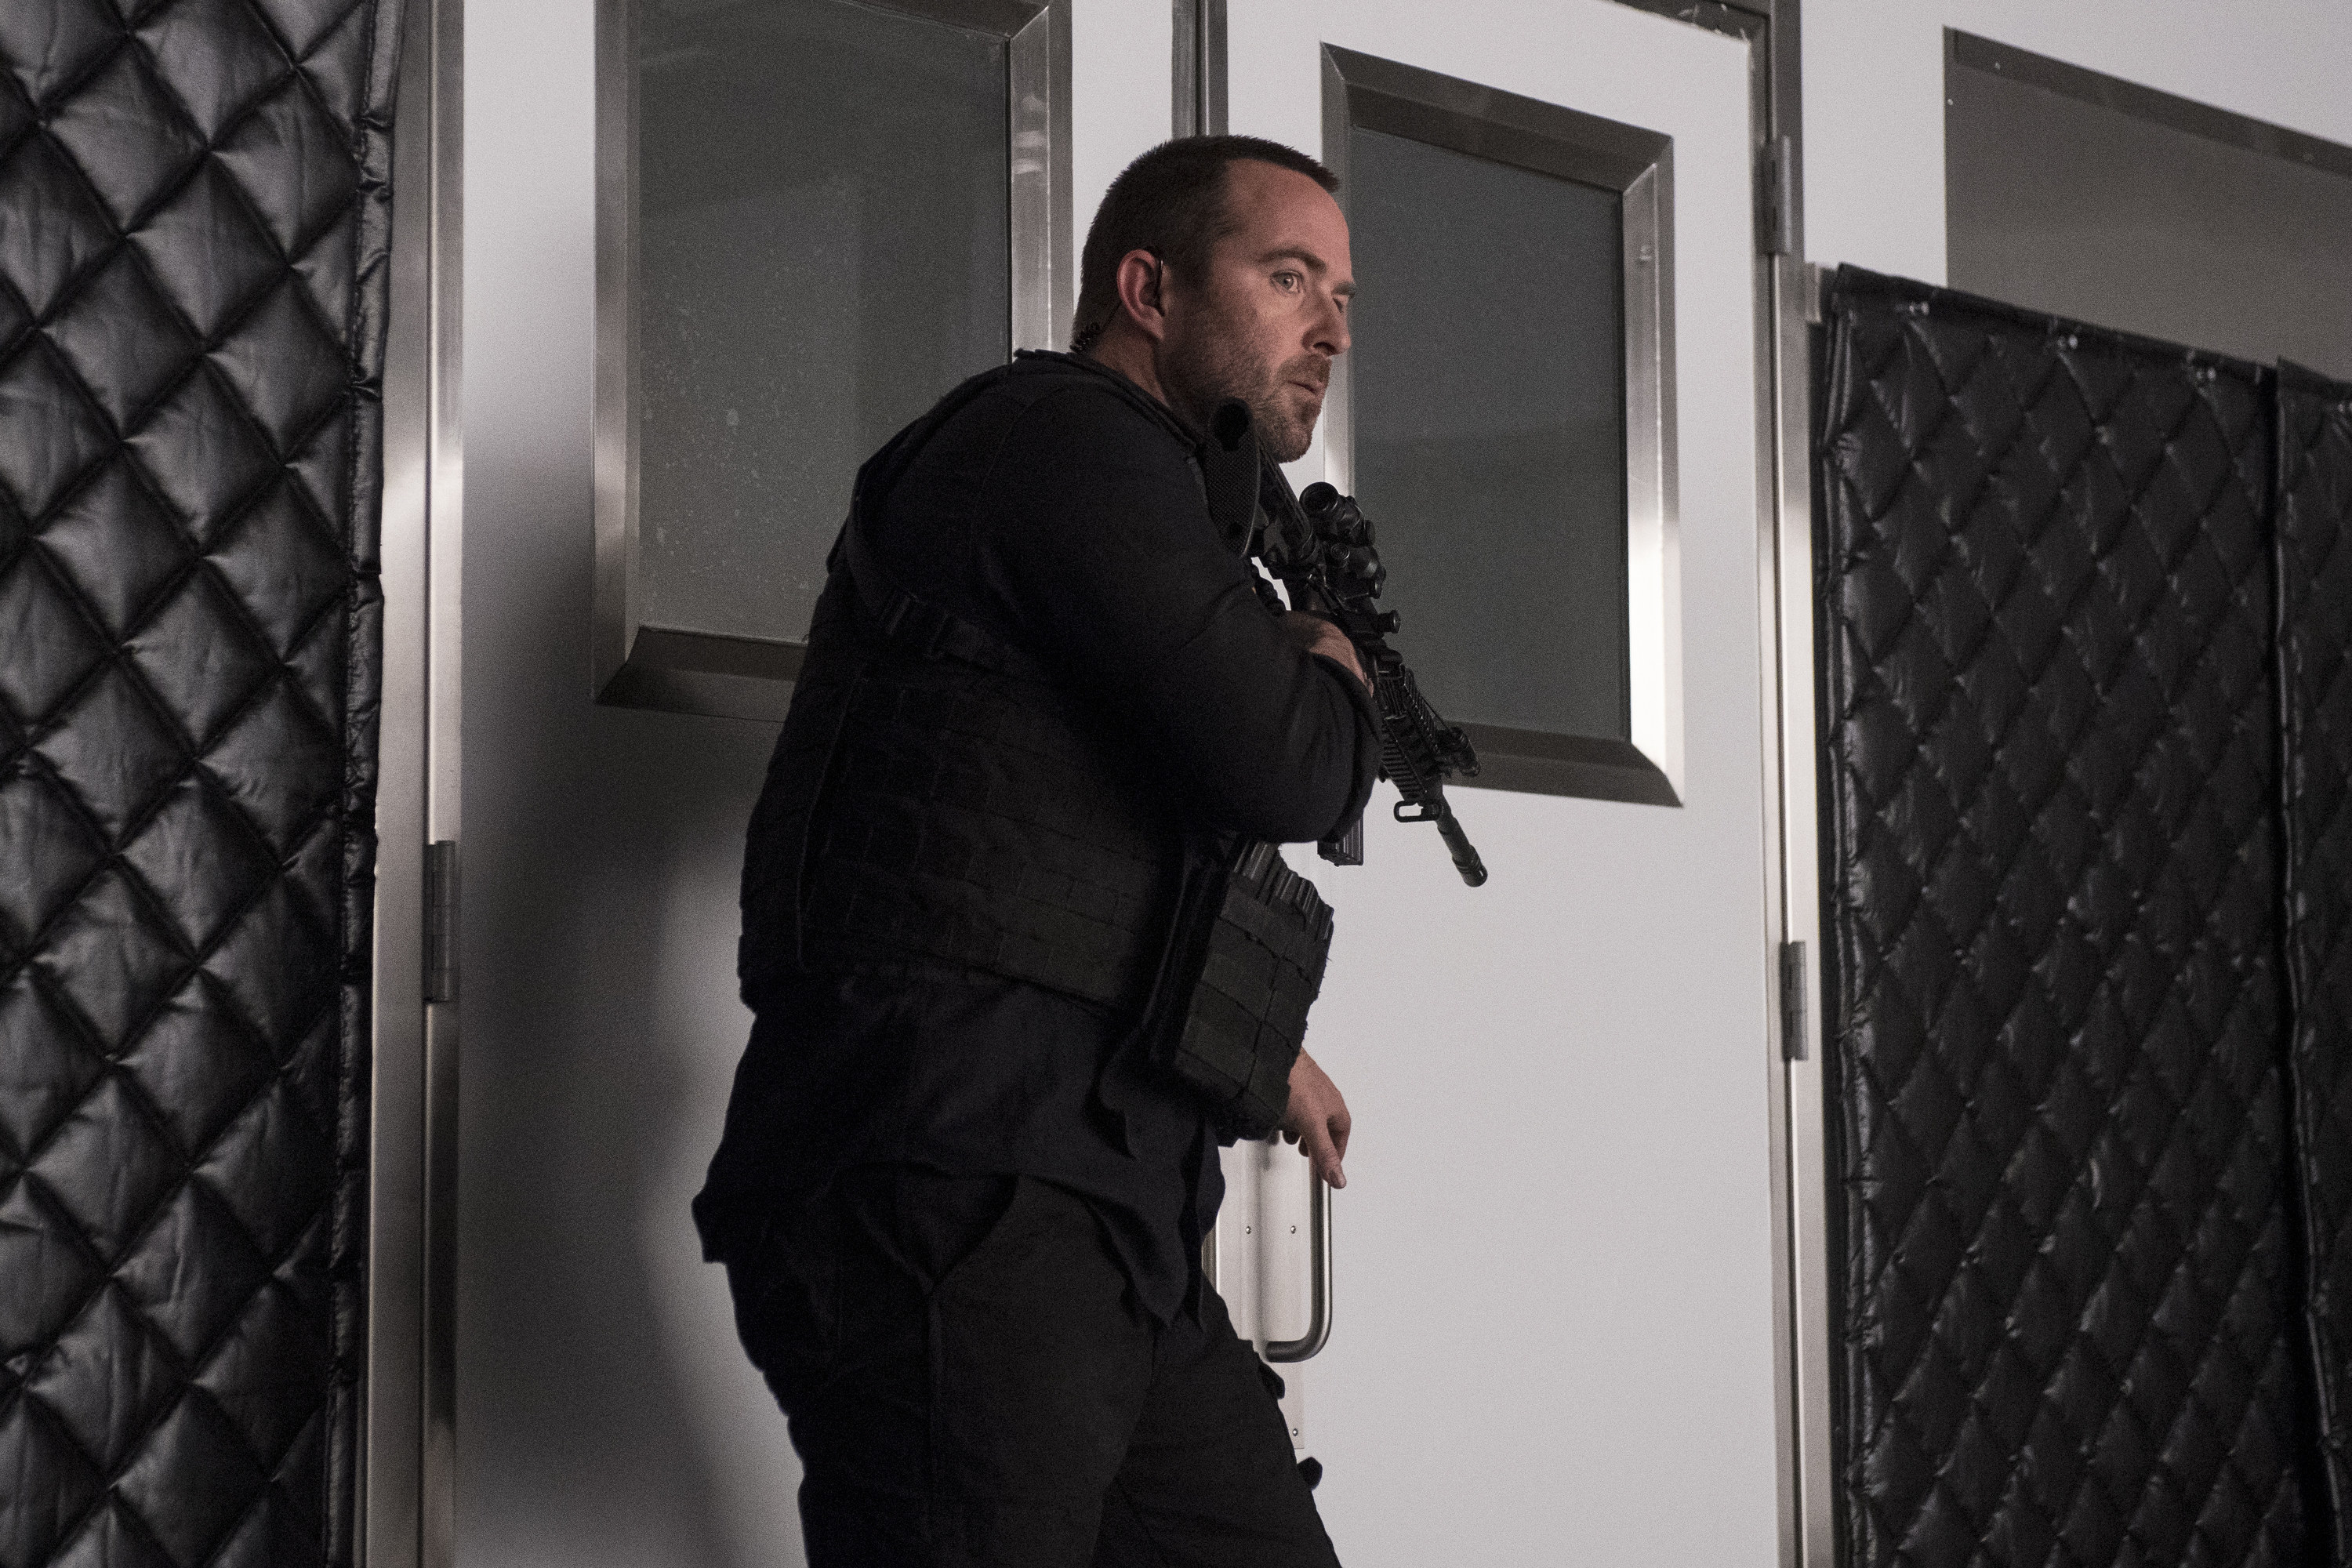 A man holding a gun and wearing a bullet proof vest